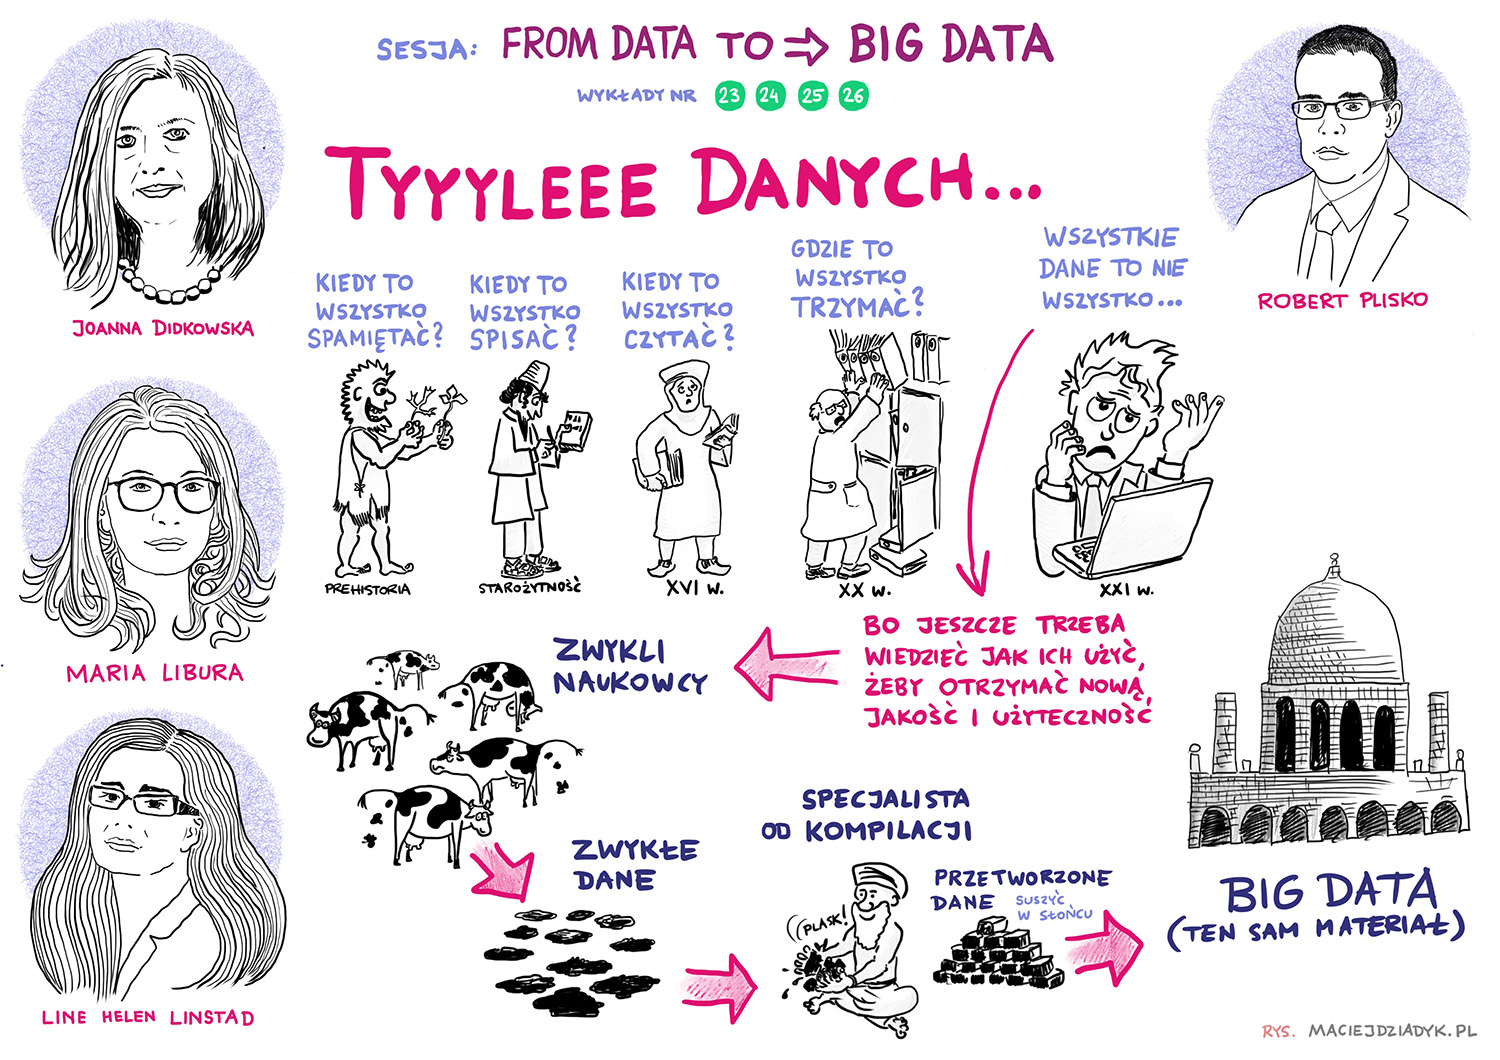 Sesja 6. From data to big data